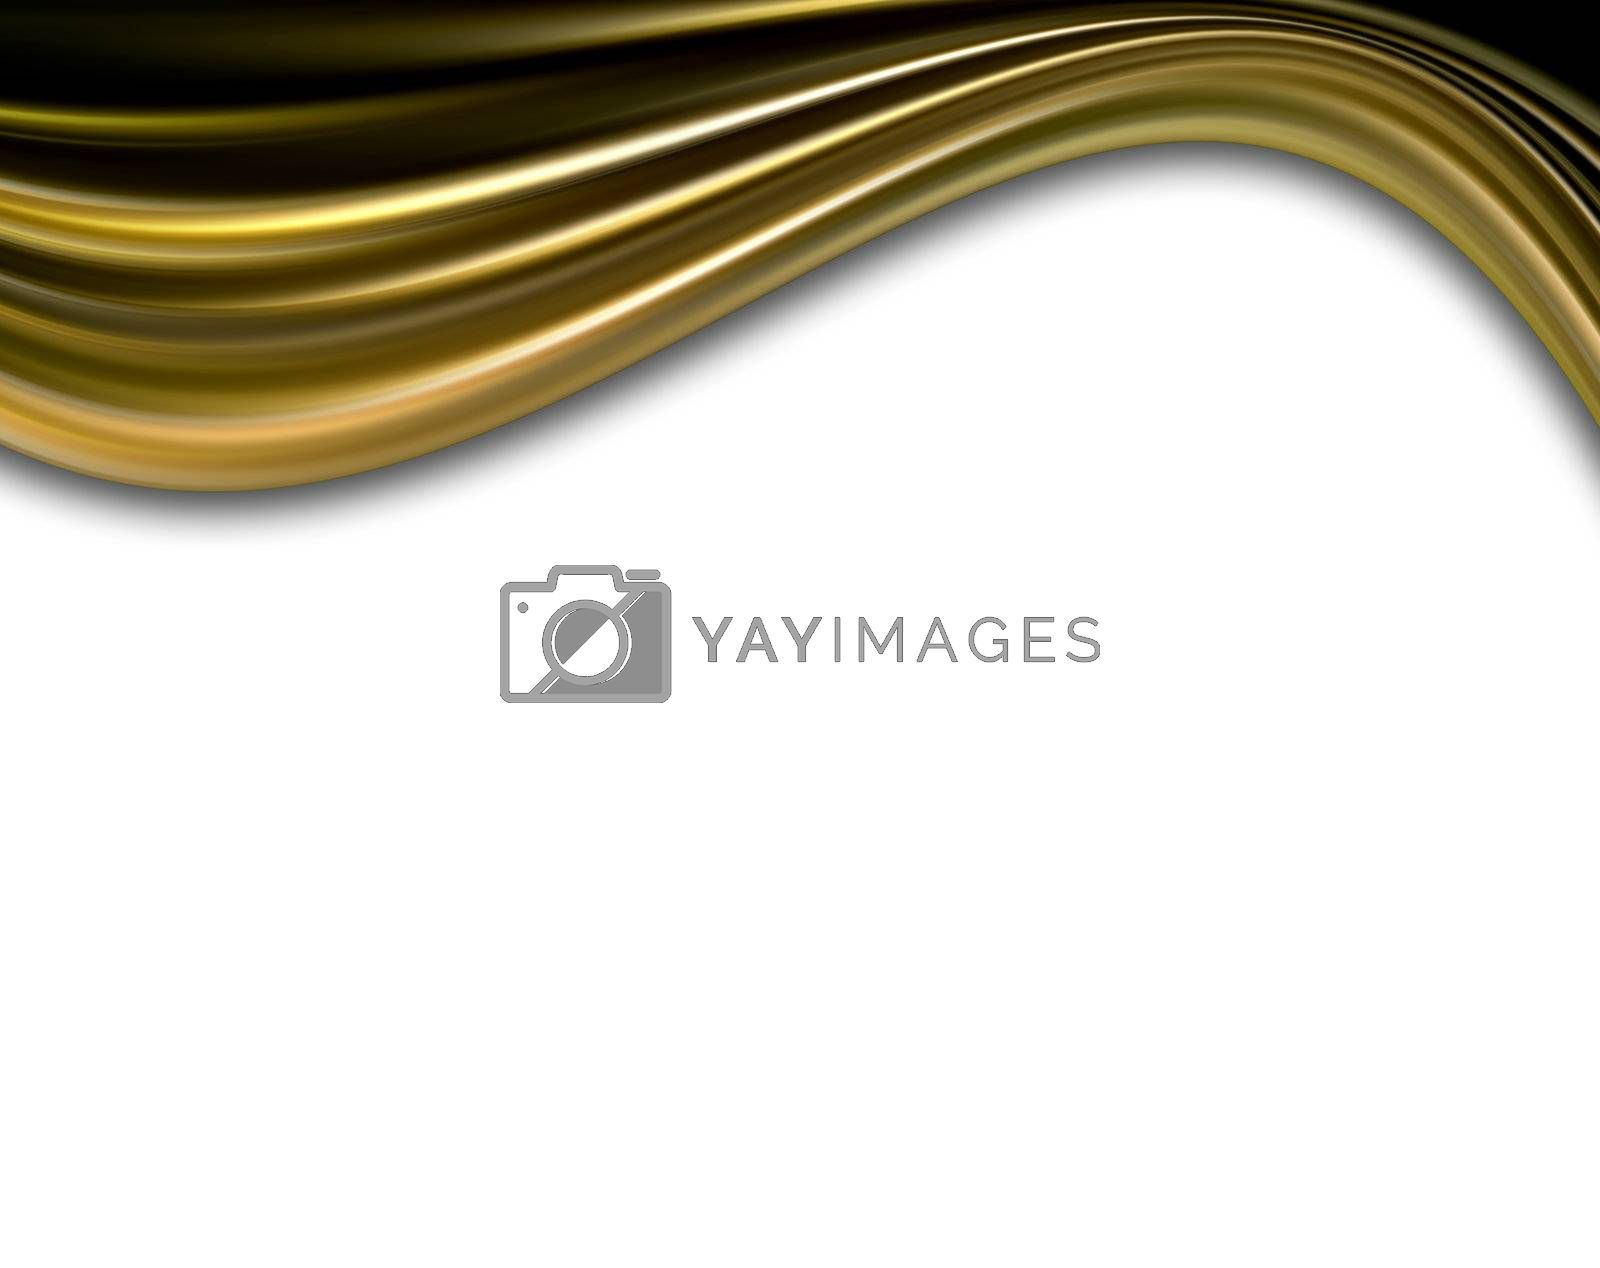 gold dynamic wave on white background